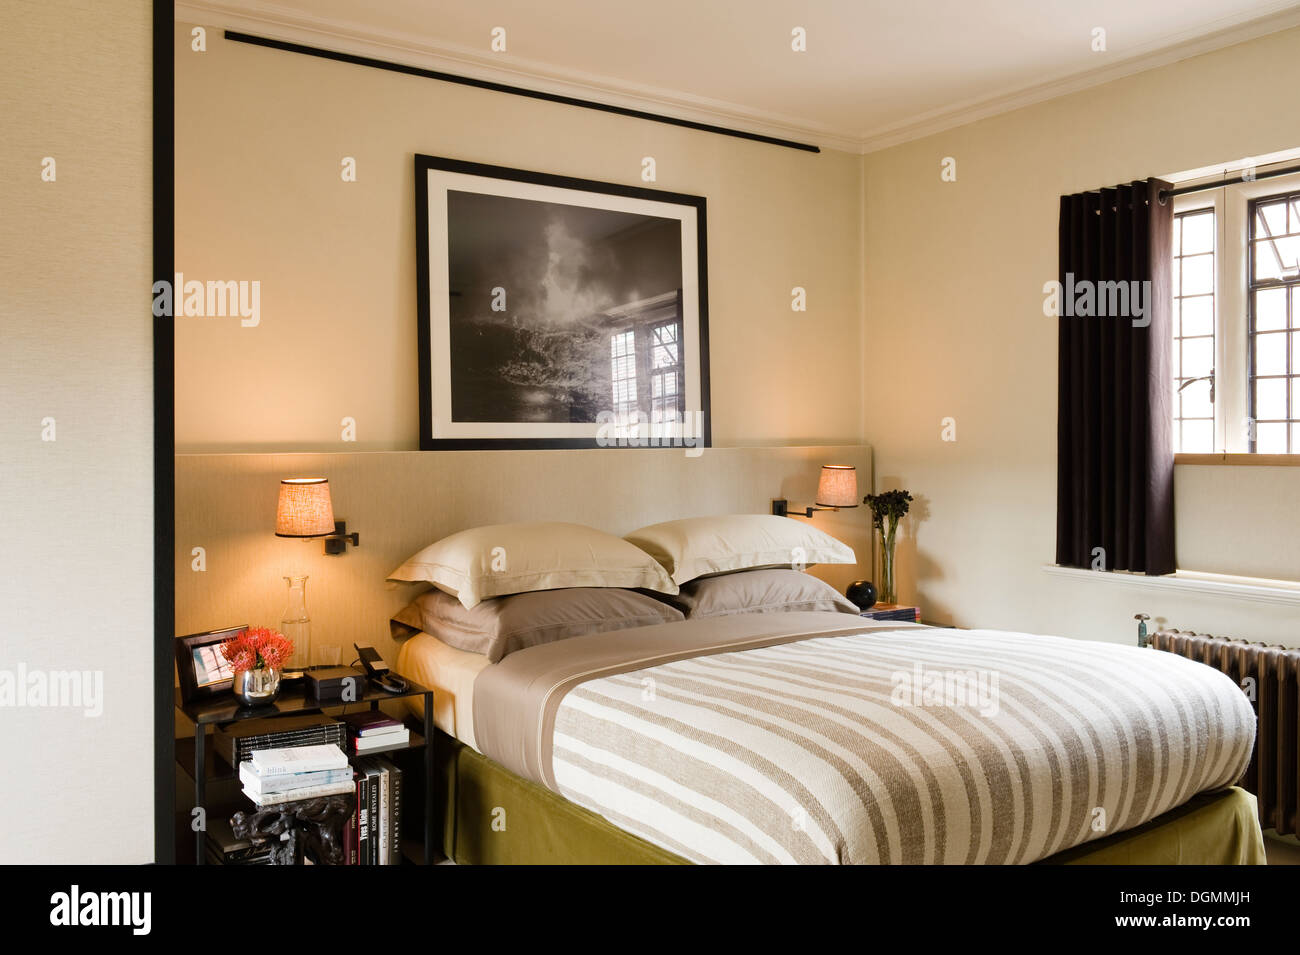 Large framed photograph by Dodo Jin Ming above bed with striped ...